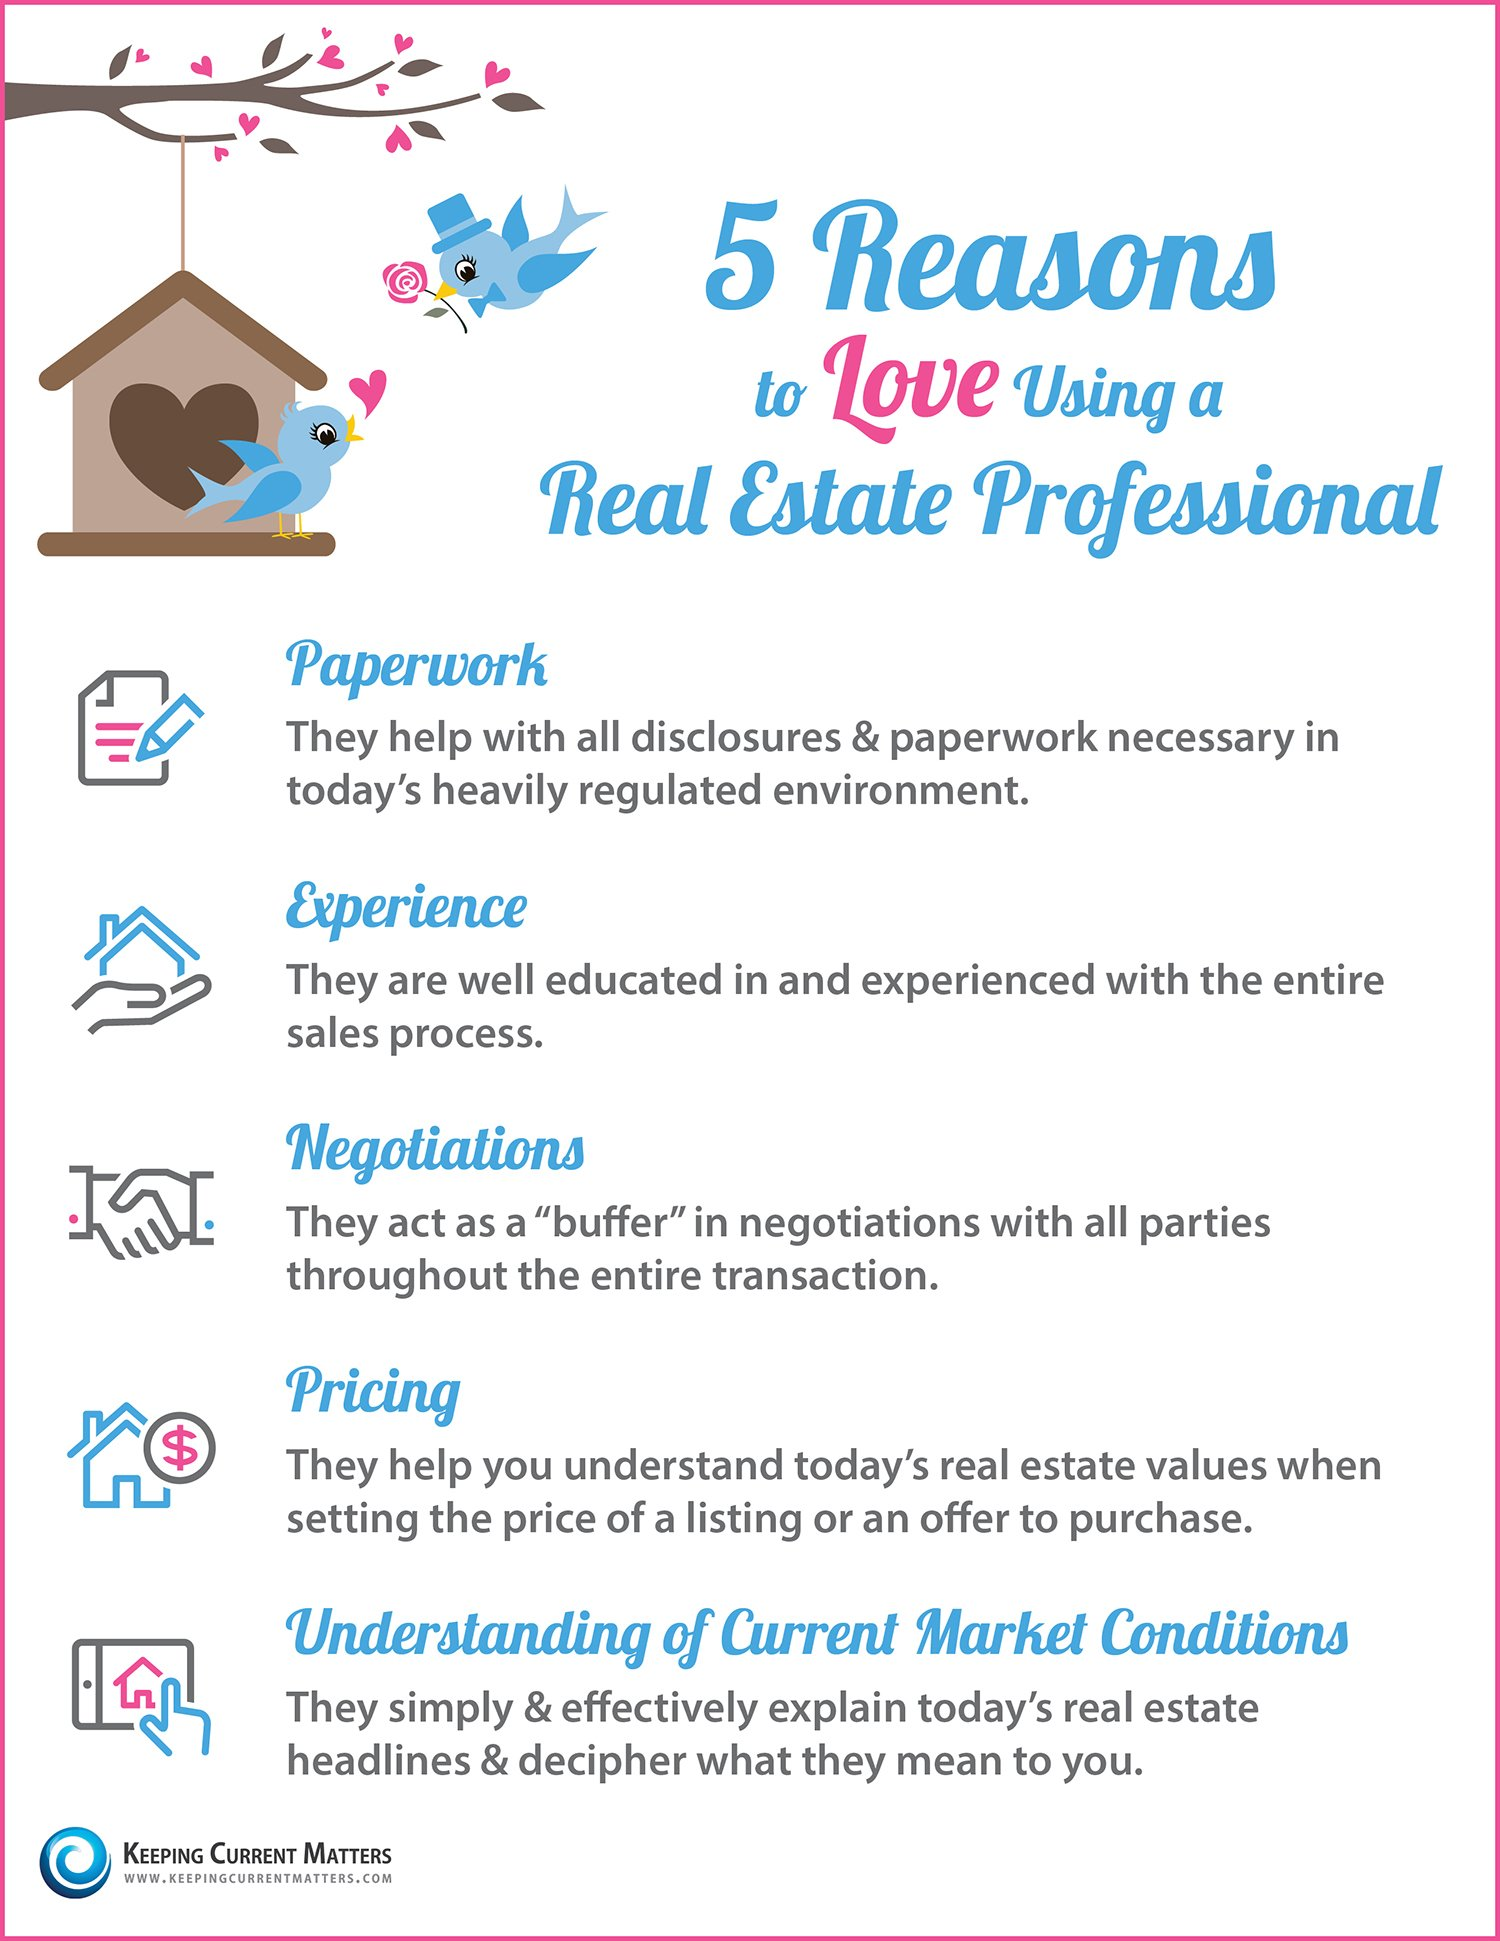 5 Reasons to Love Using a Real Estate Professional [INFOGRAPHIC] | Keeping Current Matters